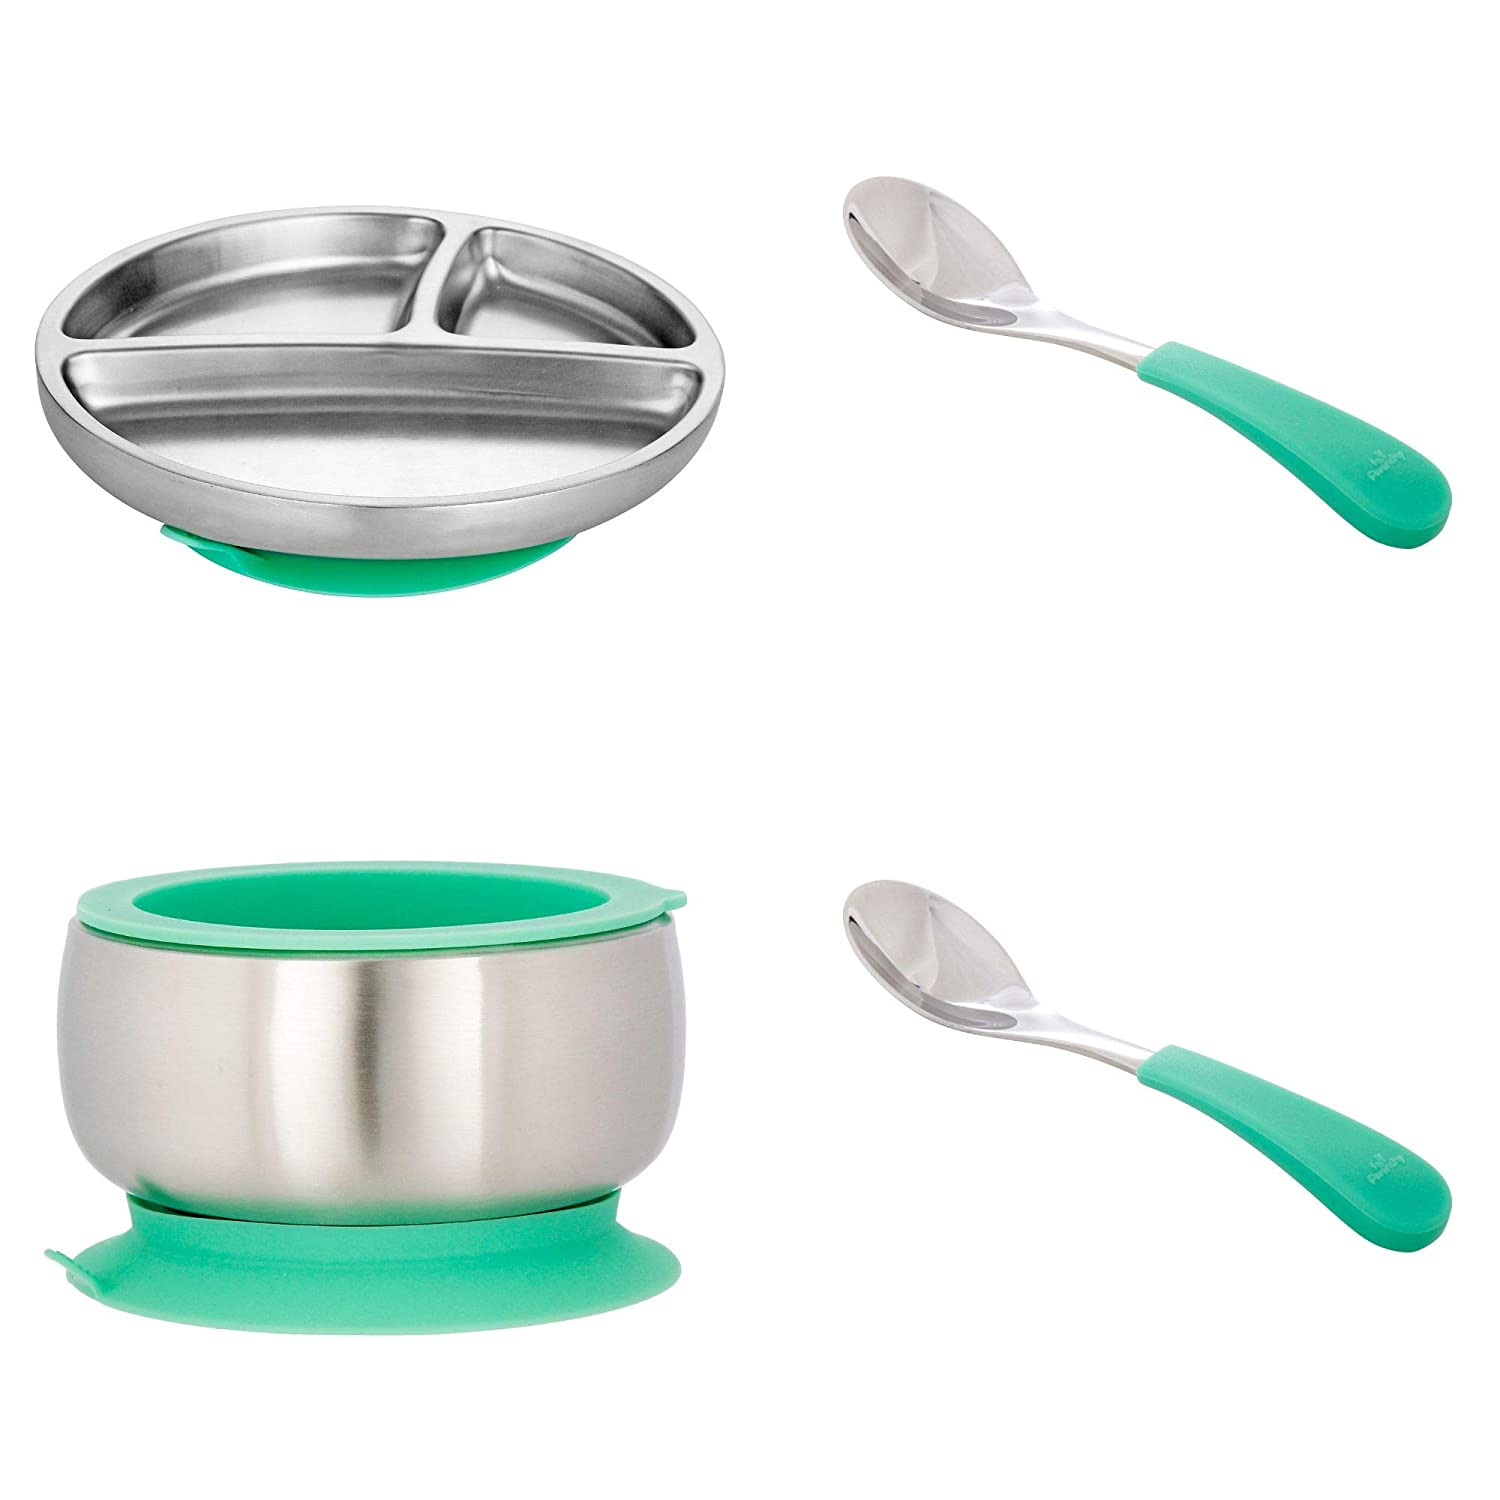 Avanchy Stainless Steel Baby, Toddler Feeding Divided Plate + Bowl + 2 Spoons Giftset. Infant, Kid or Child Gift. 18/8, BPA Free, BPS Free, Lead Free and Phthalate Free. Green Gift Set